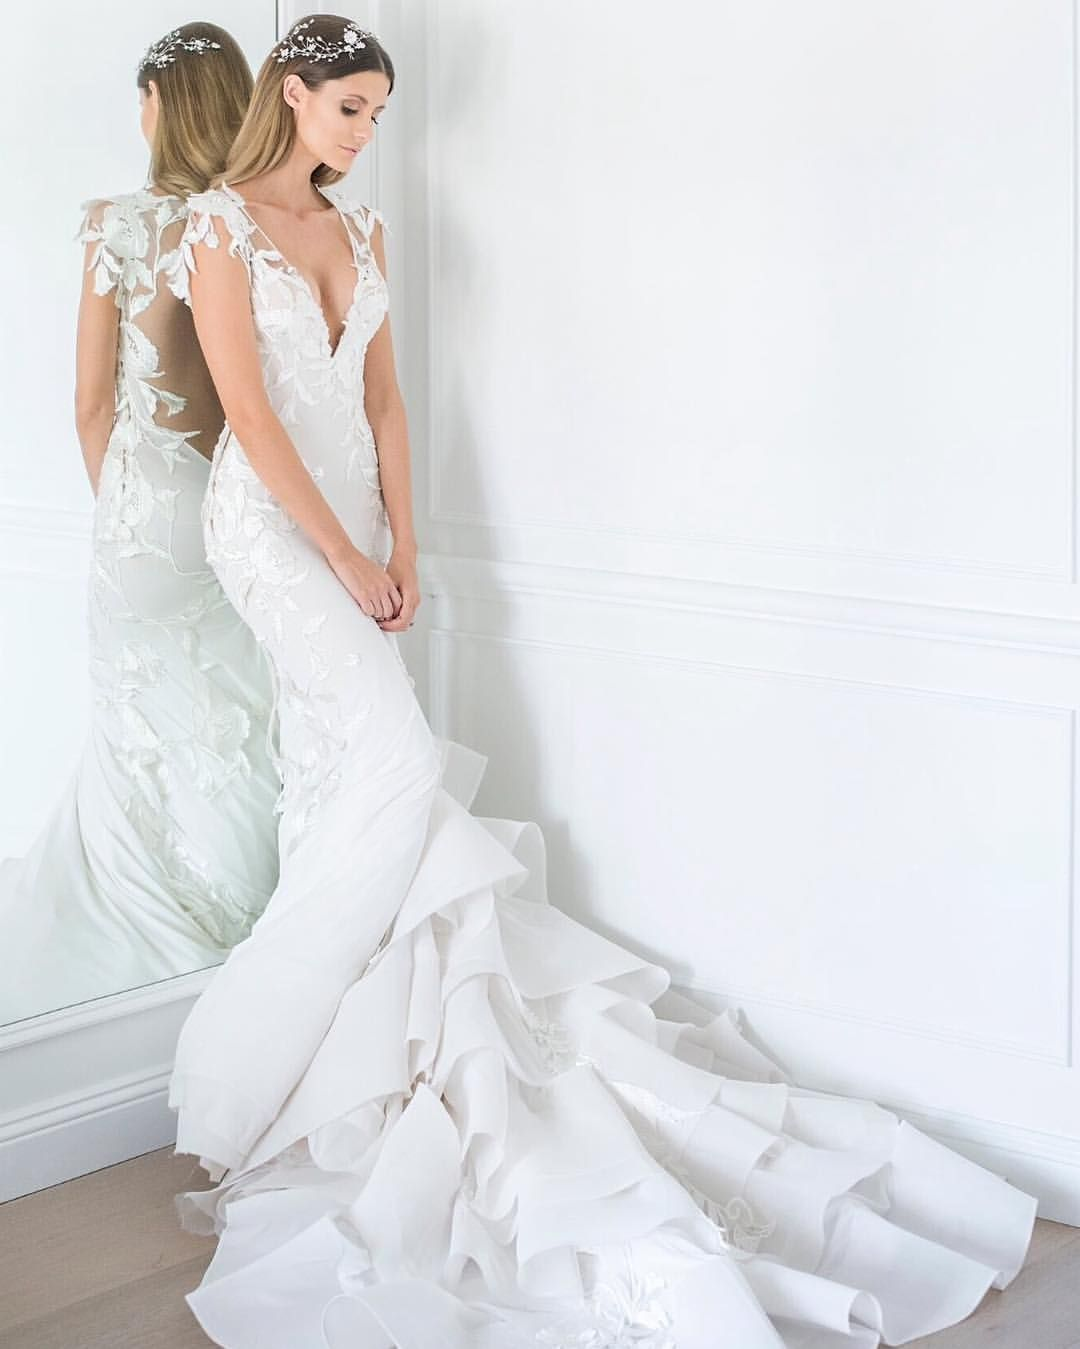 Mxm couture lace bodice with ruffled tiered train wedding gown